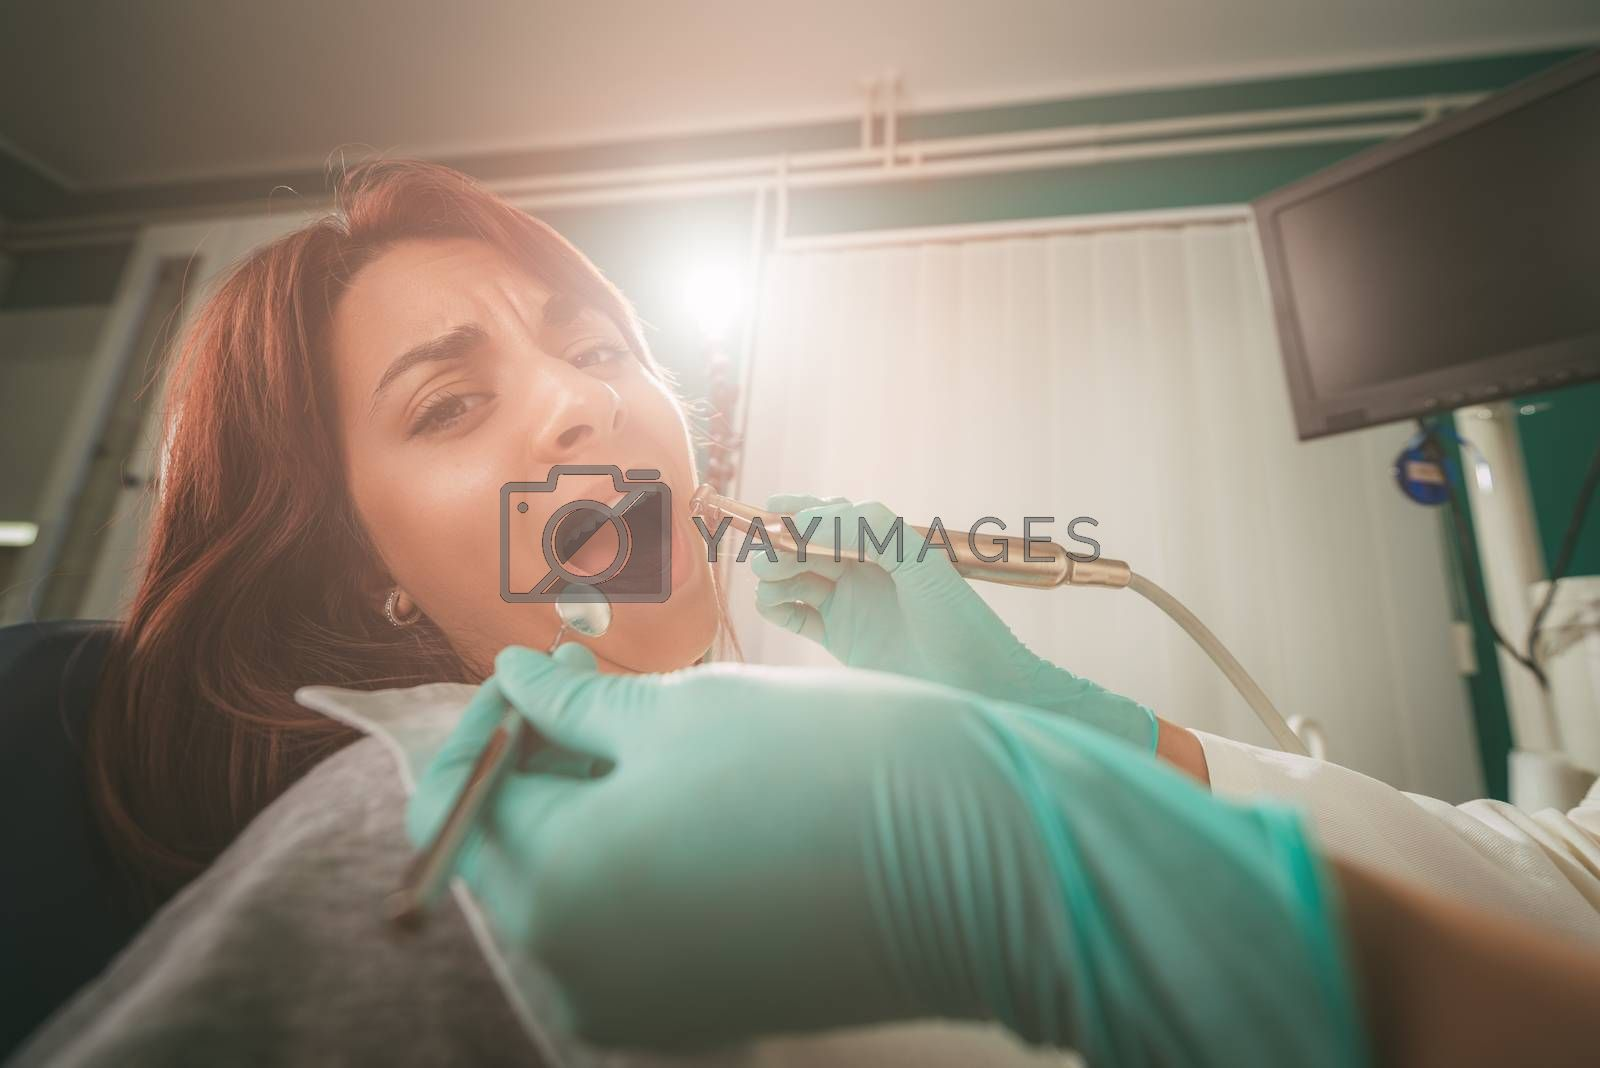 At The Dentist by MilanMarkovic78